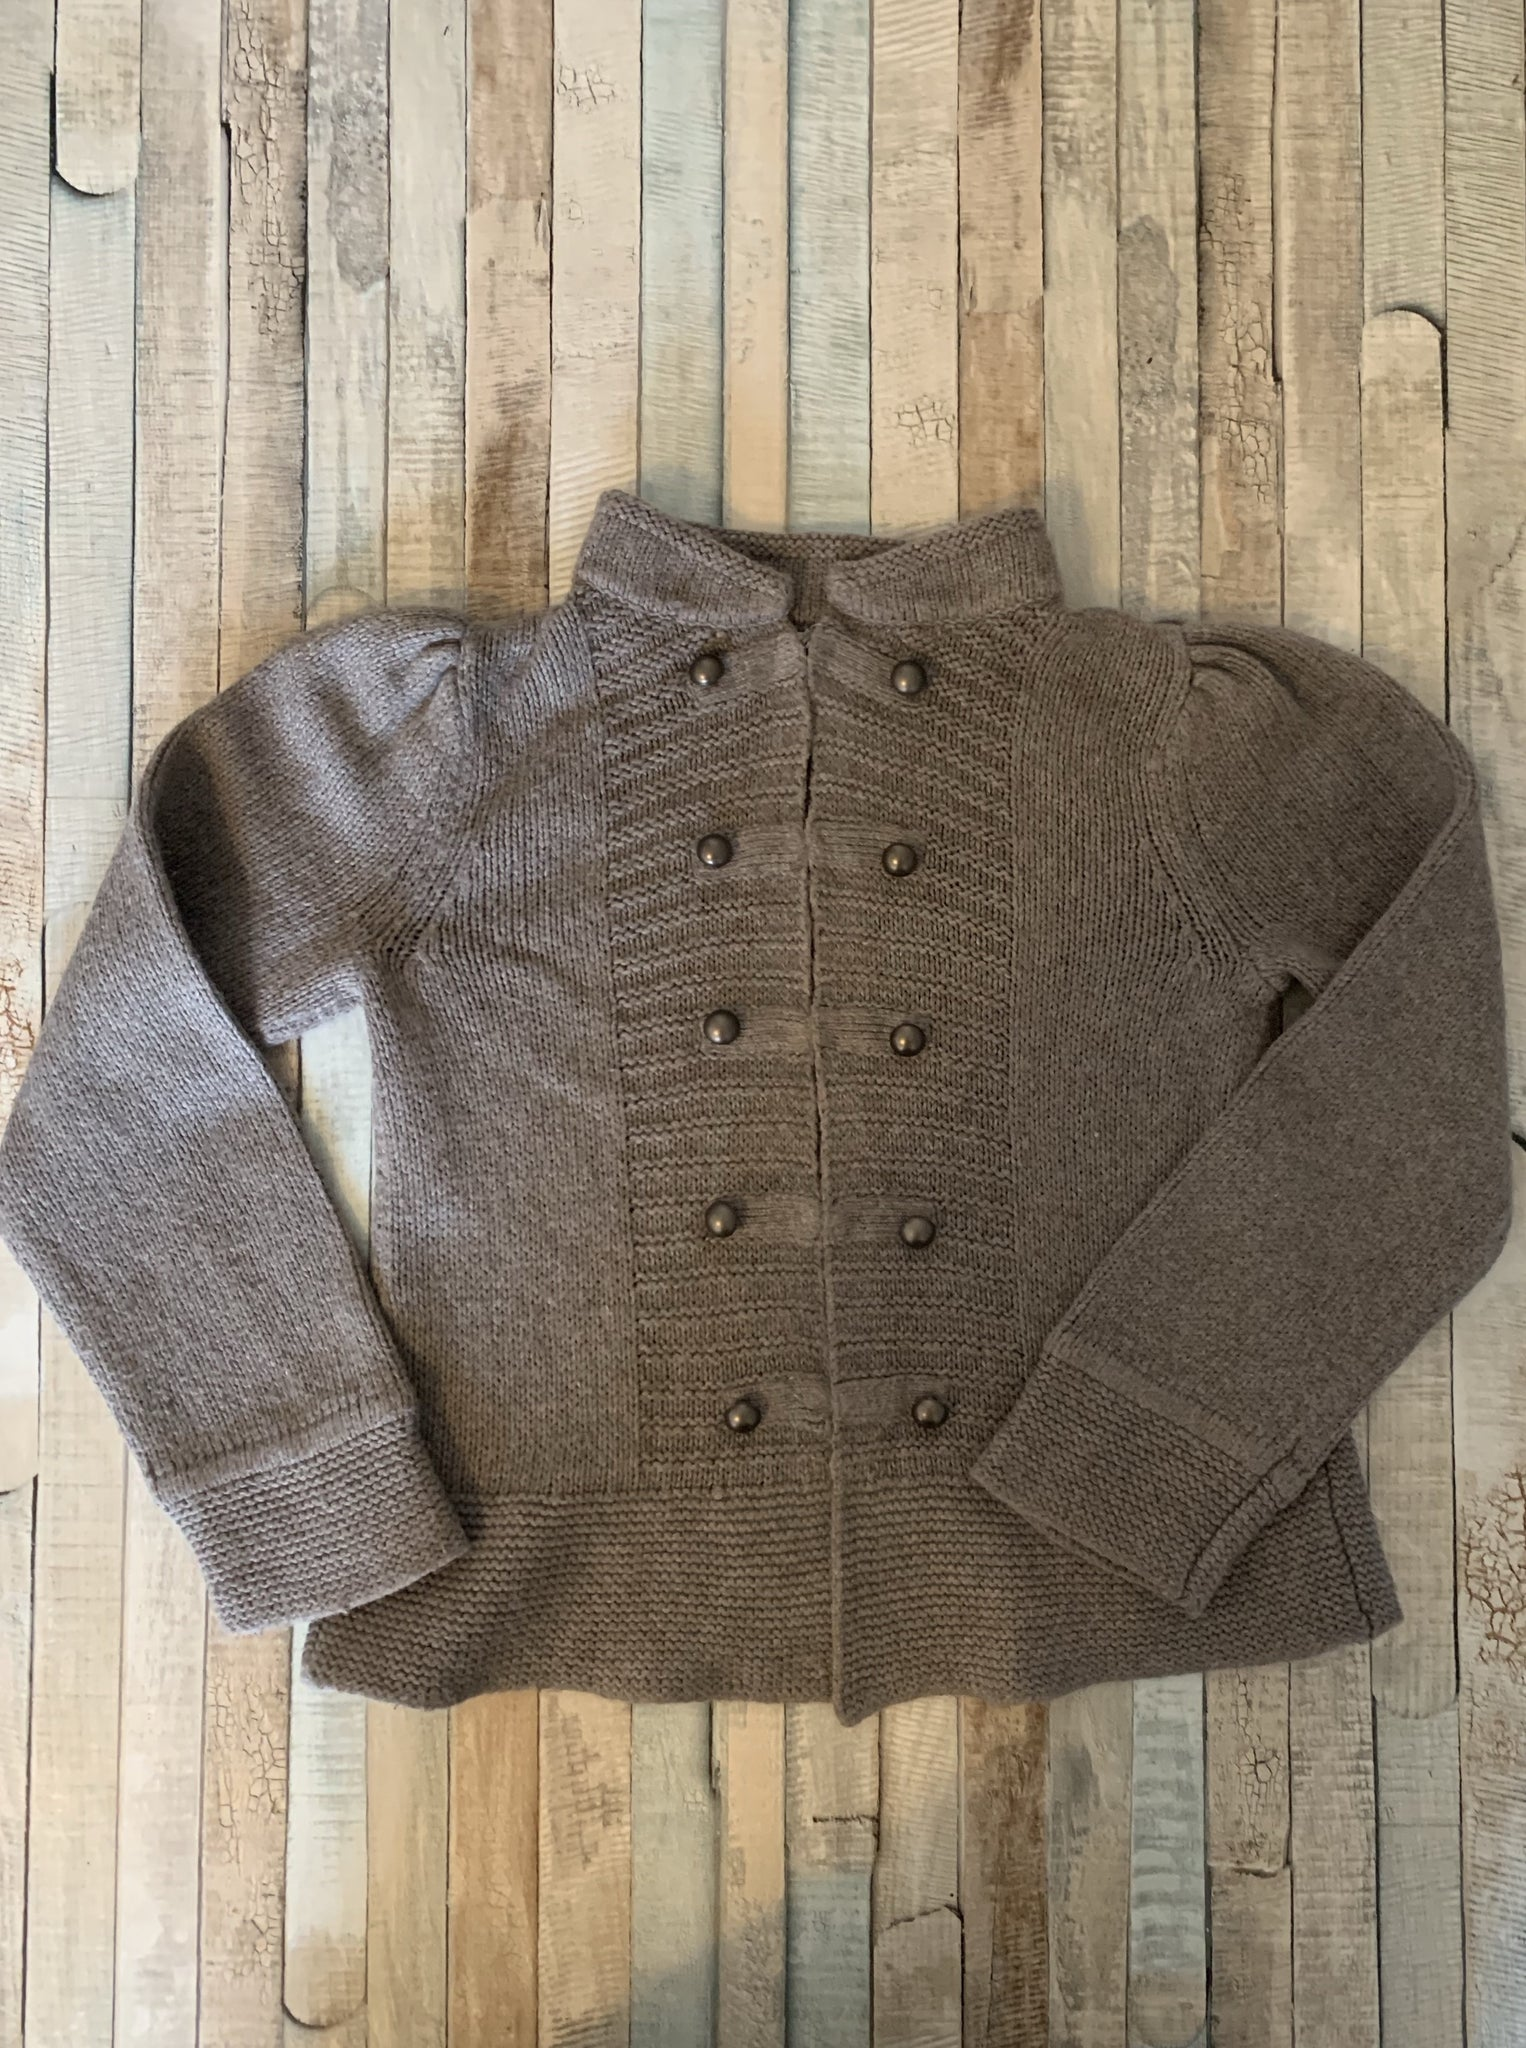 Monsoon Grey Wool Cardigan Age 6-8 - Nippers Preloved children's clothing